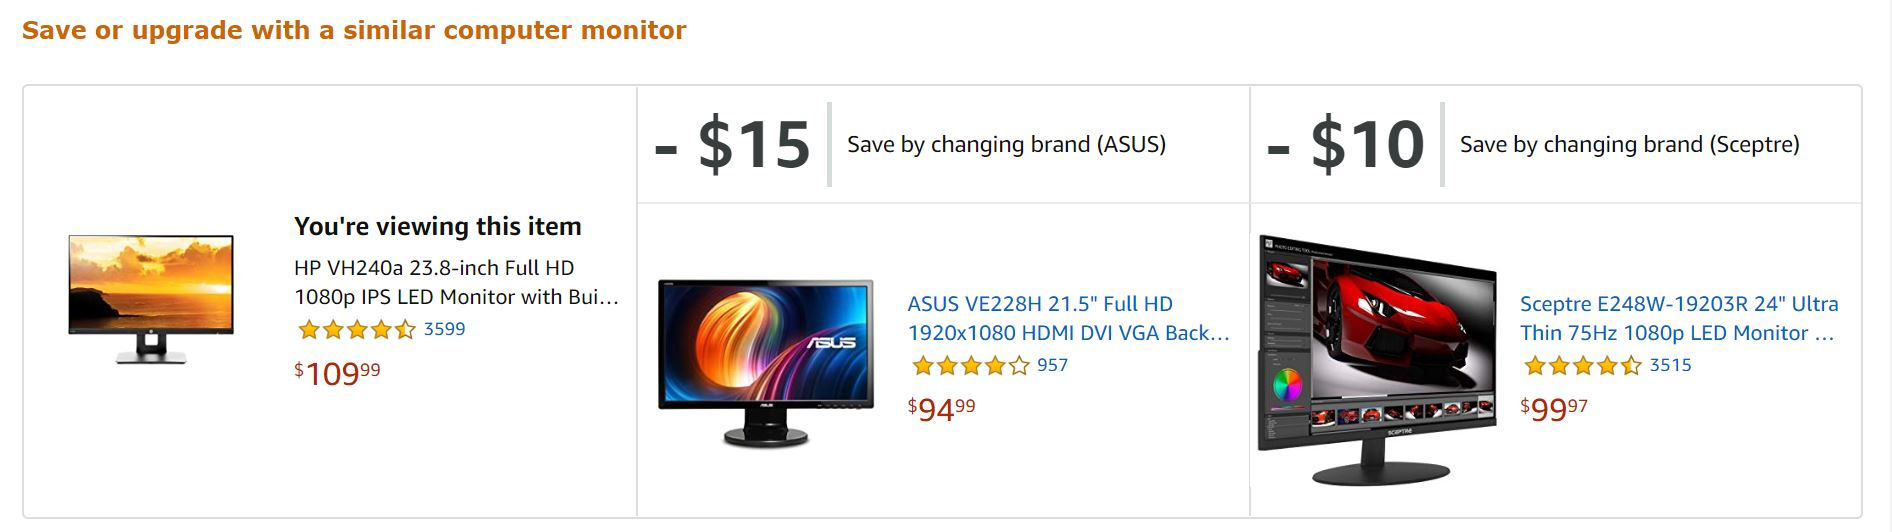 Amazon's product recommendations: save or upgrade with a similar product